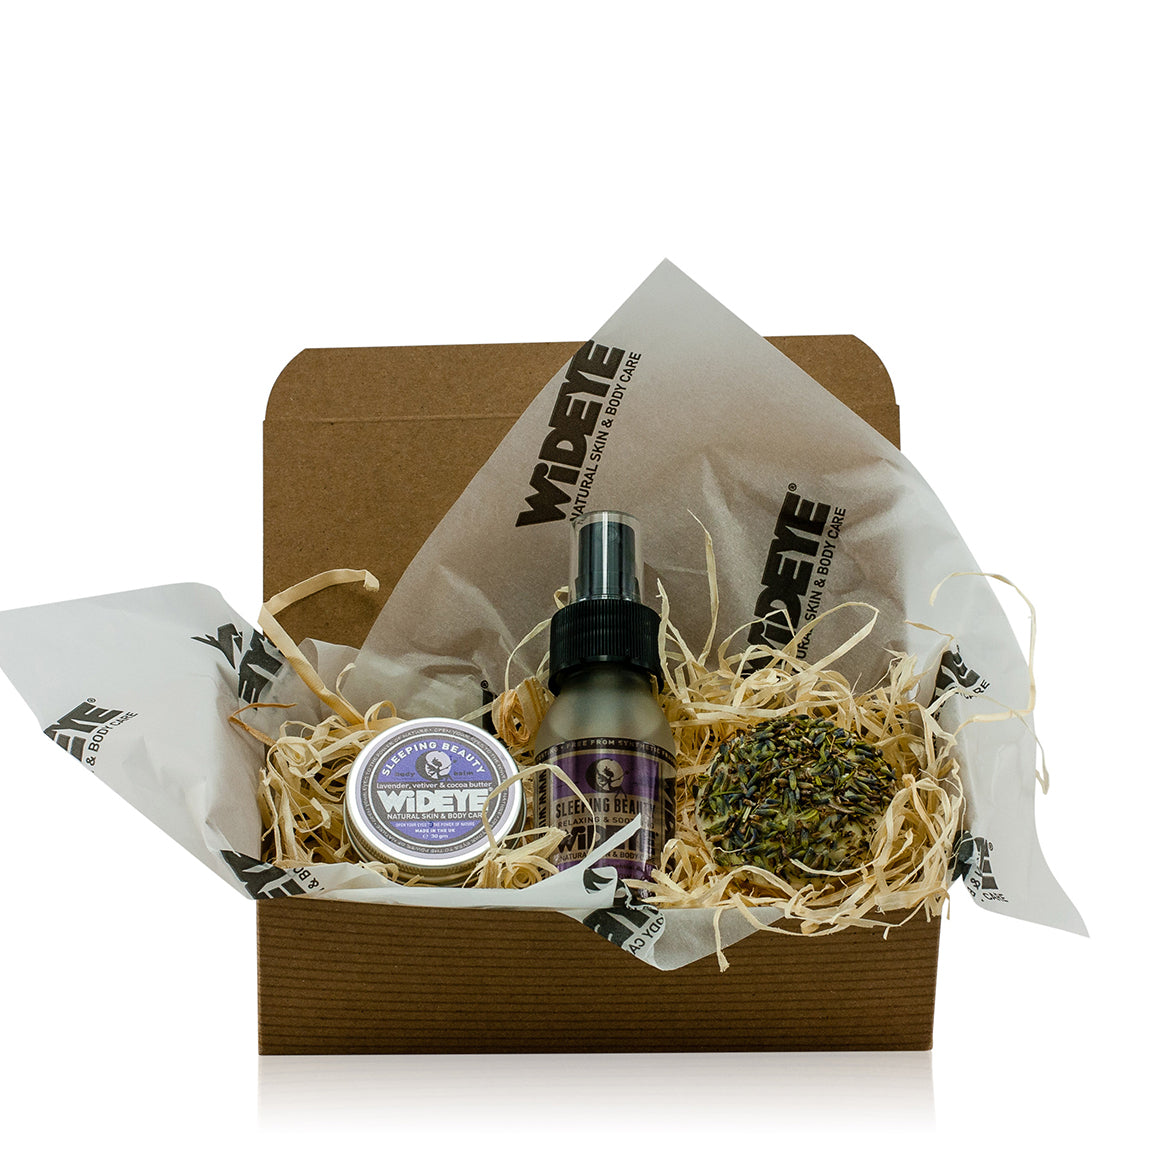 Natural skincare Sleeping Beauty kit gift box including active balm, pillow spray and lavender buttercup. Handmade by WiDEYE in Rye.